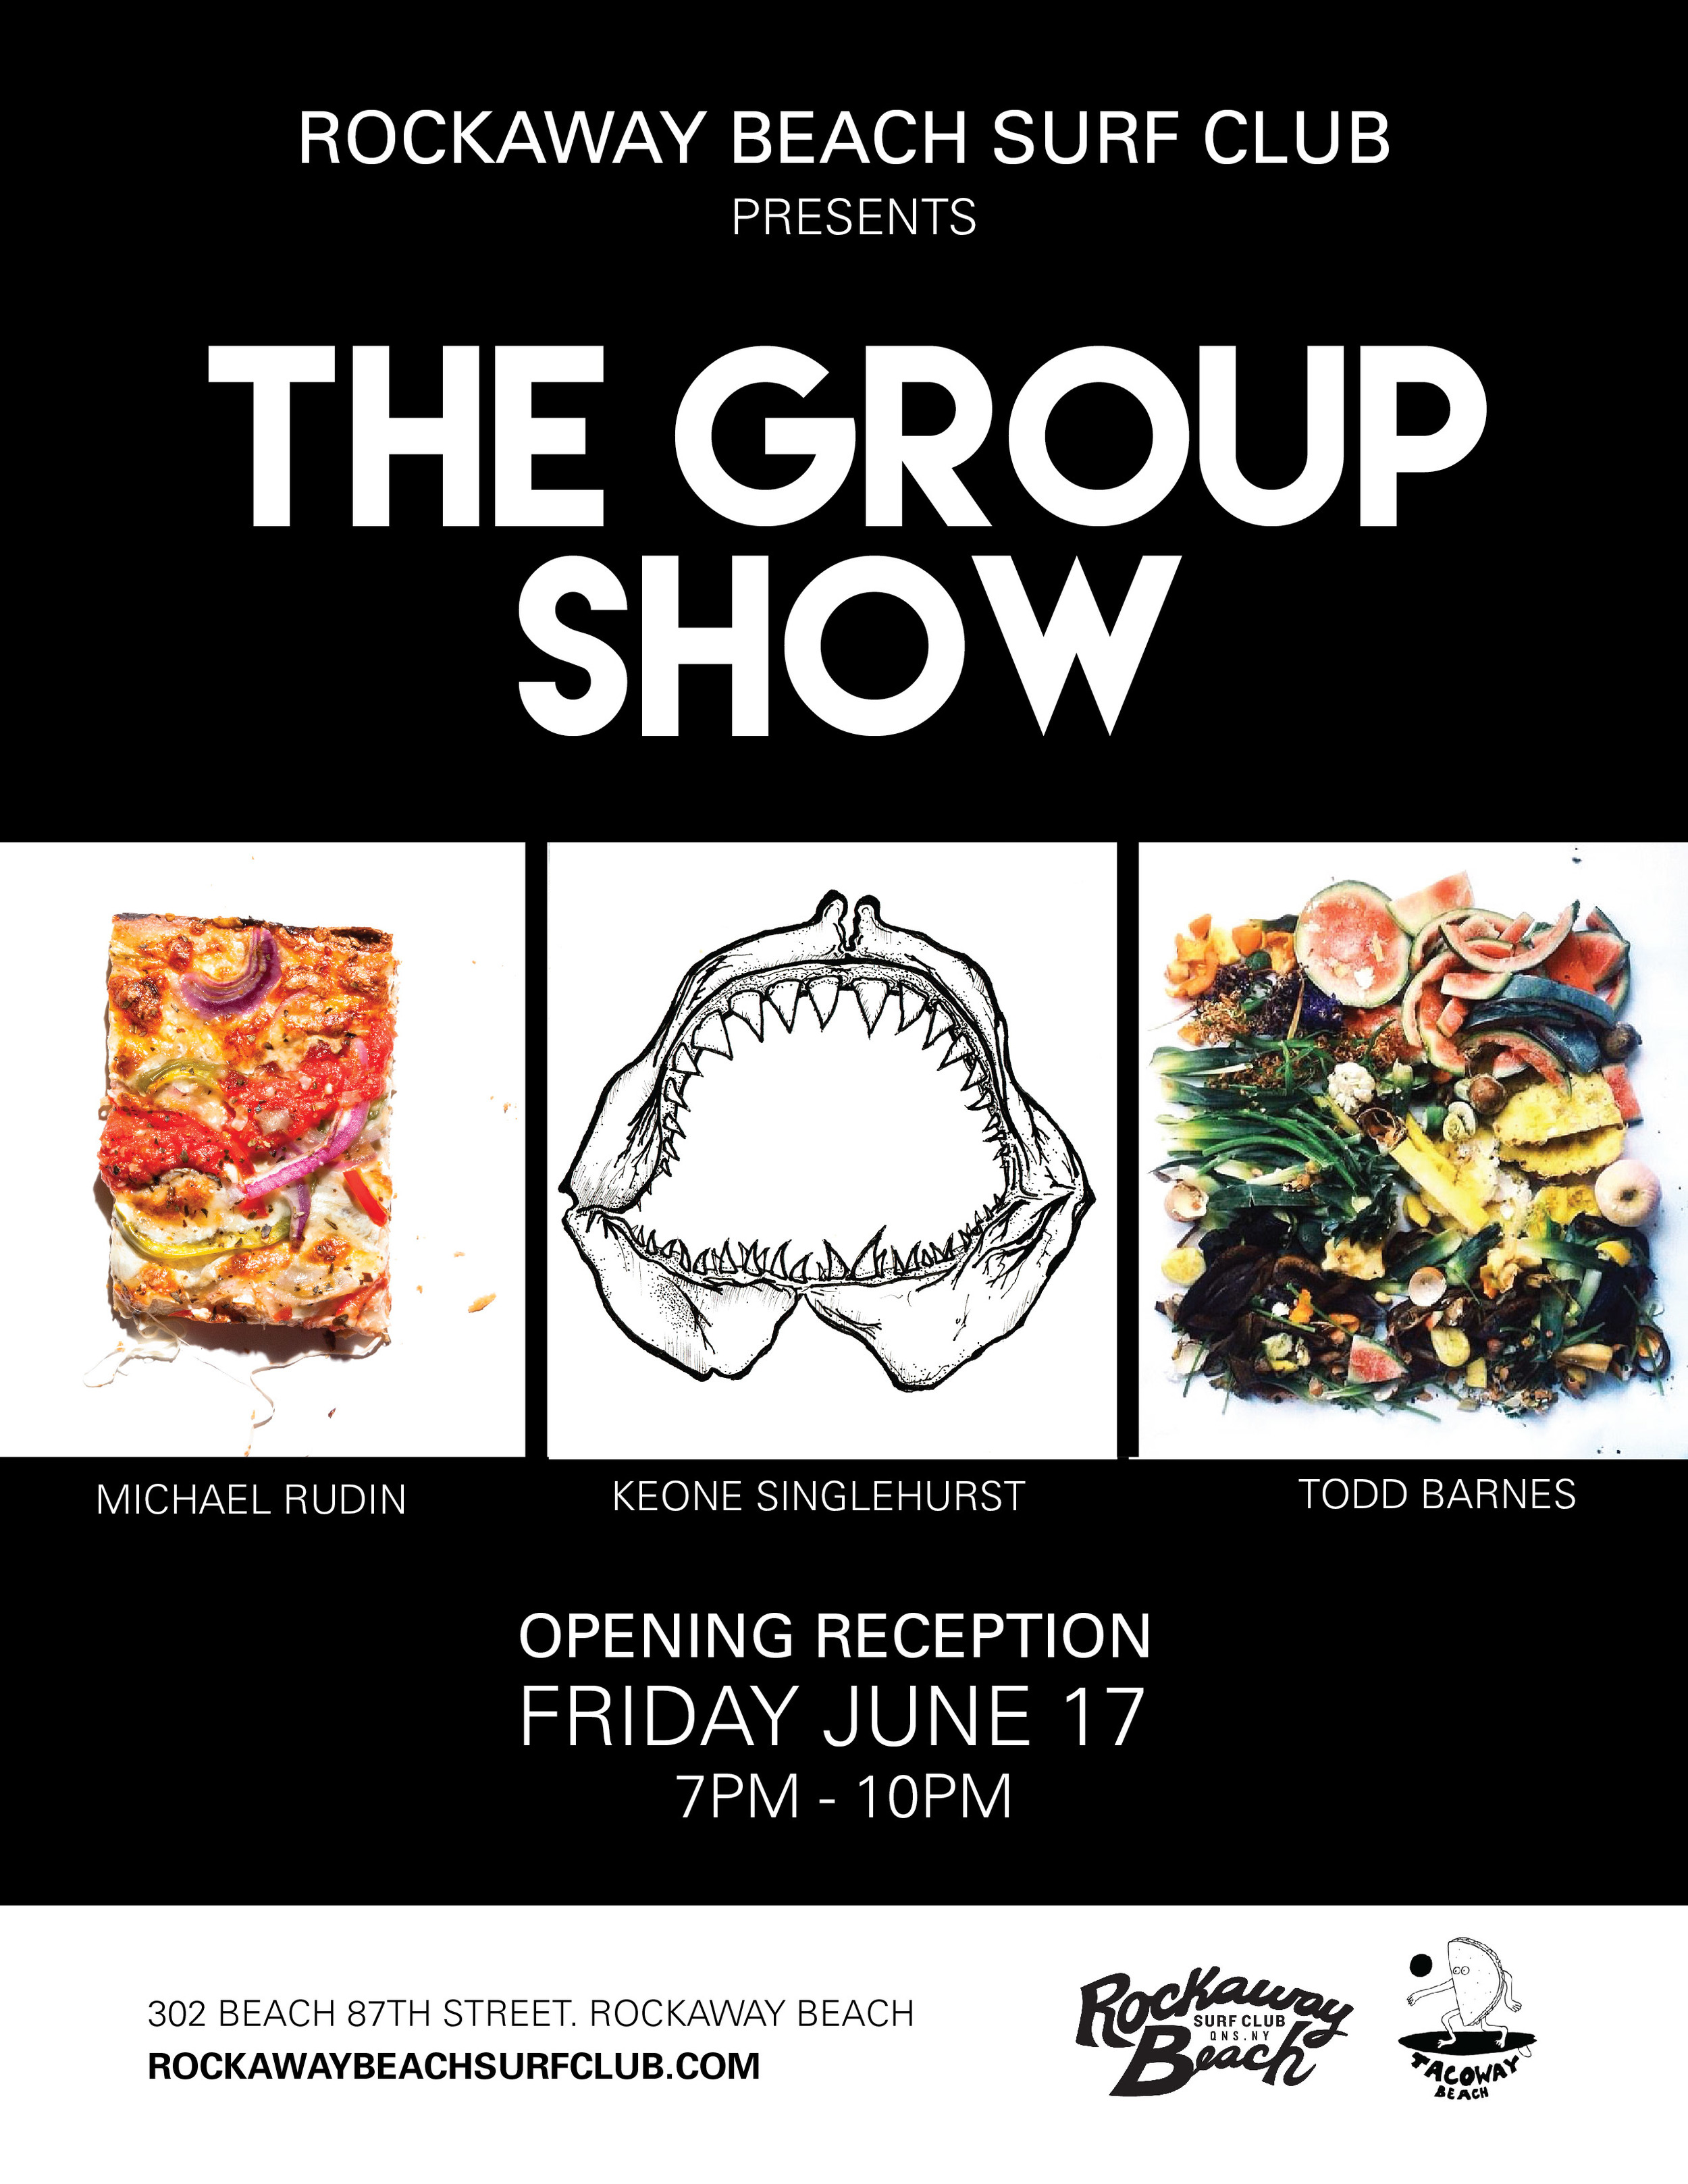 the group show rockaway beach surf club